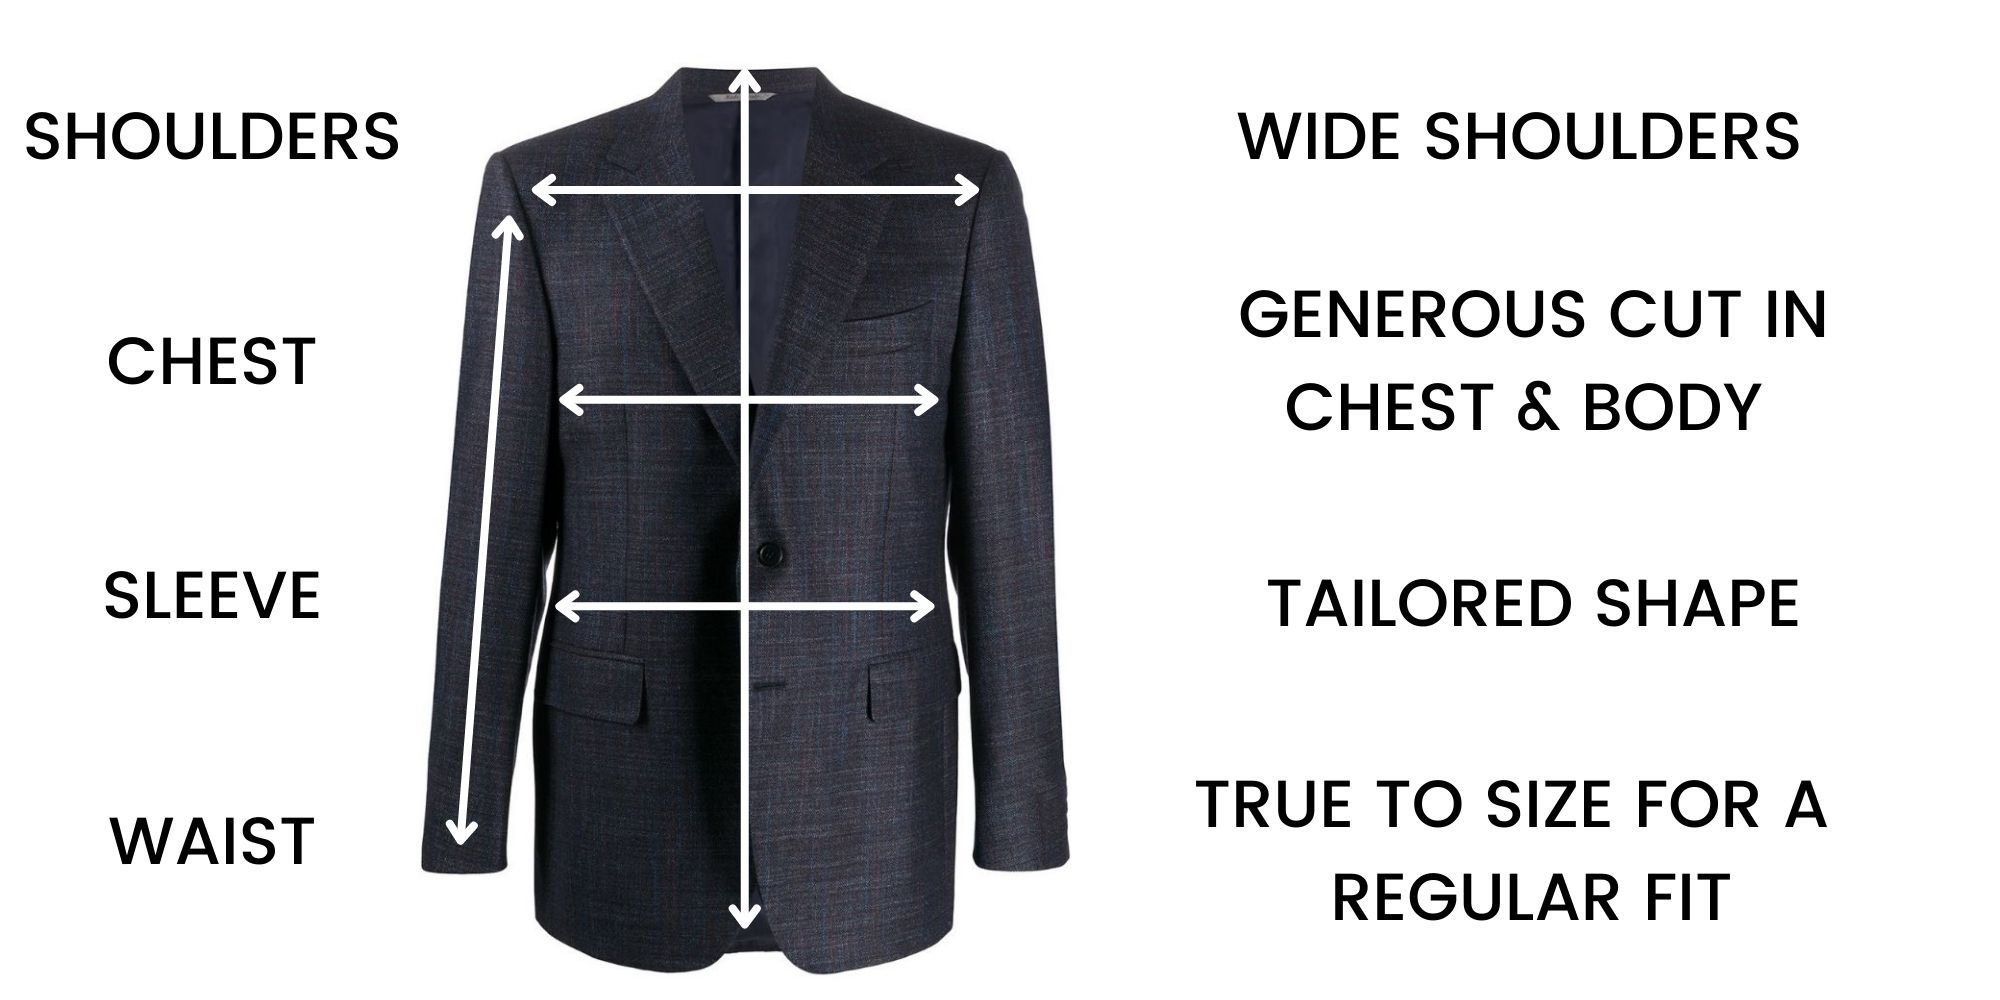 Canali Jackets Contemporary Fit - Size Chart